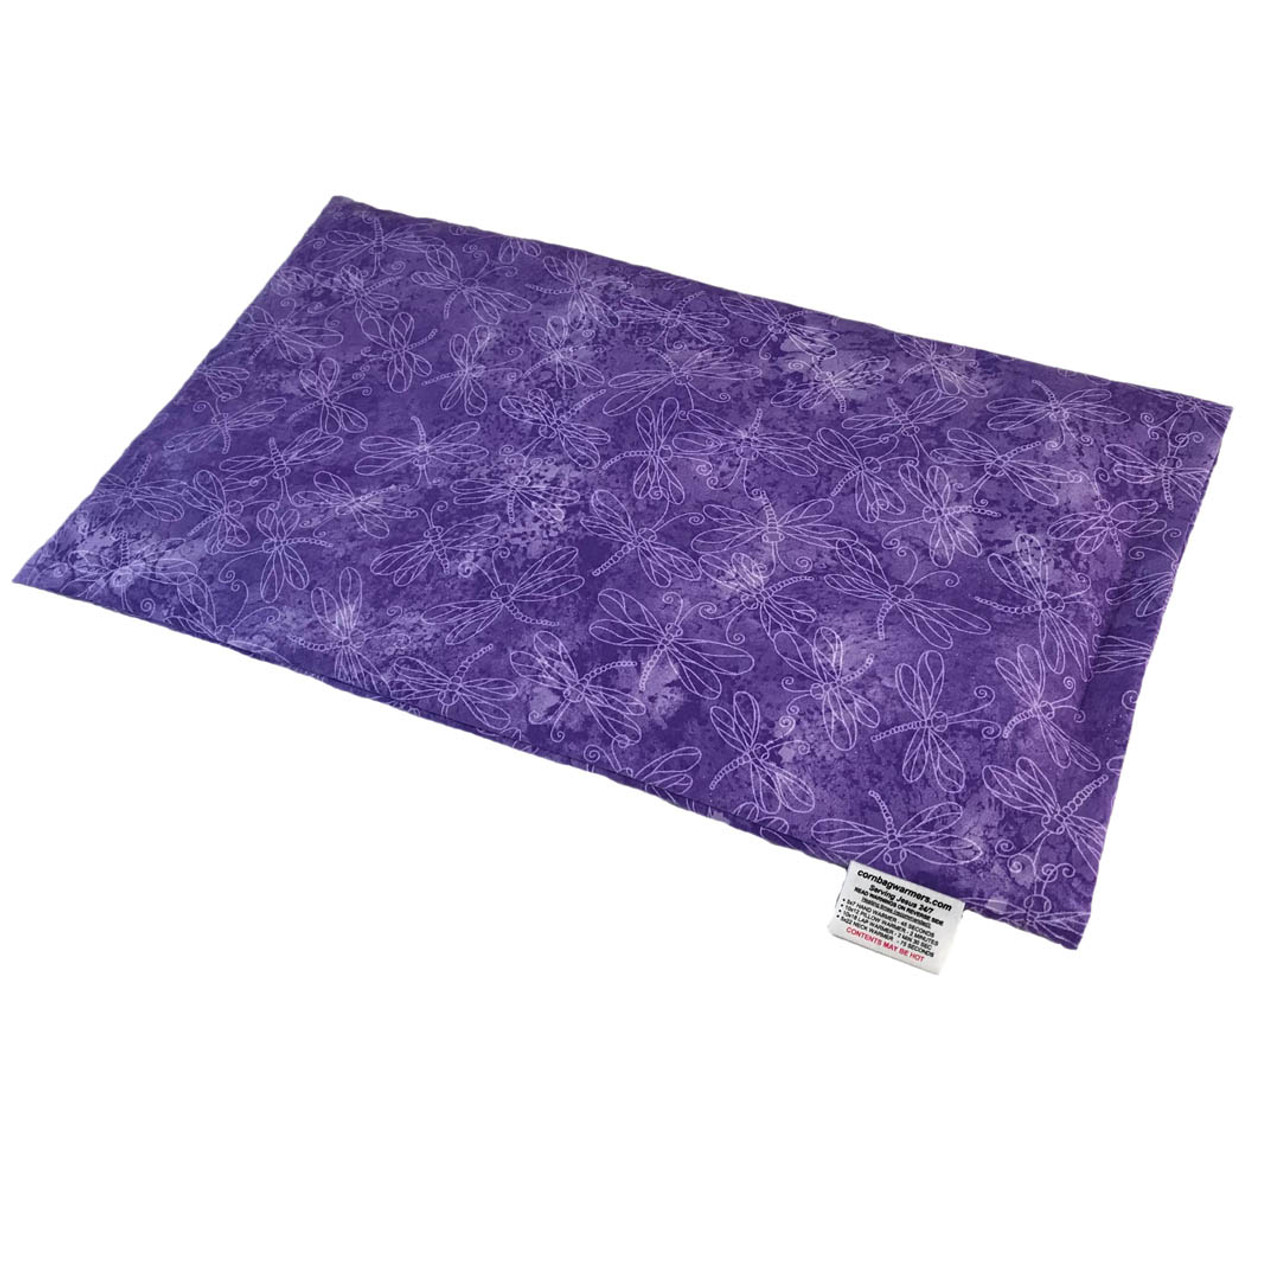 Purple Sundrenched Dragonflies Lap Cornbag Warmer - Corn Filled Microwave Heating Pad